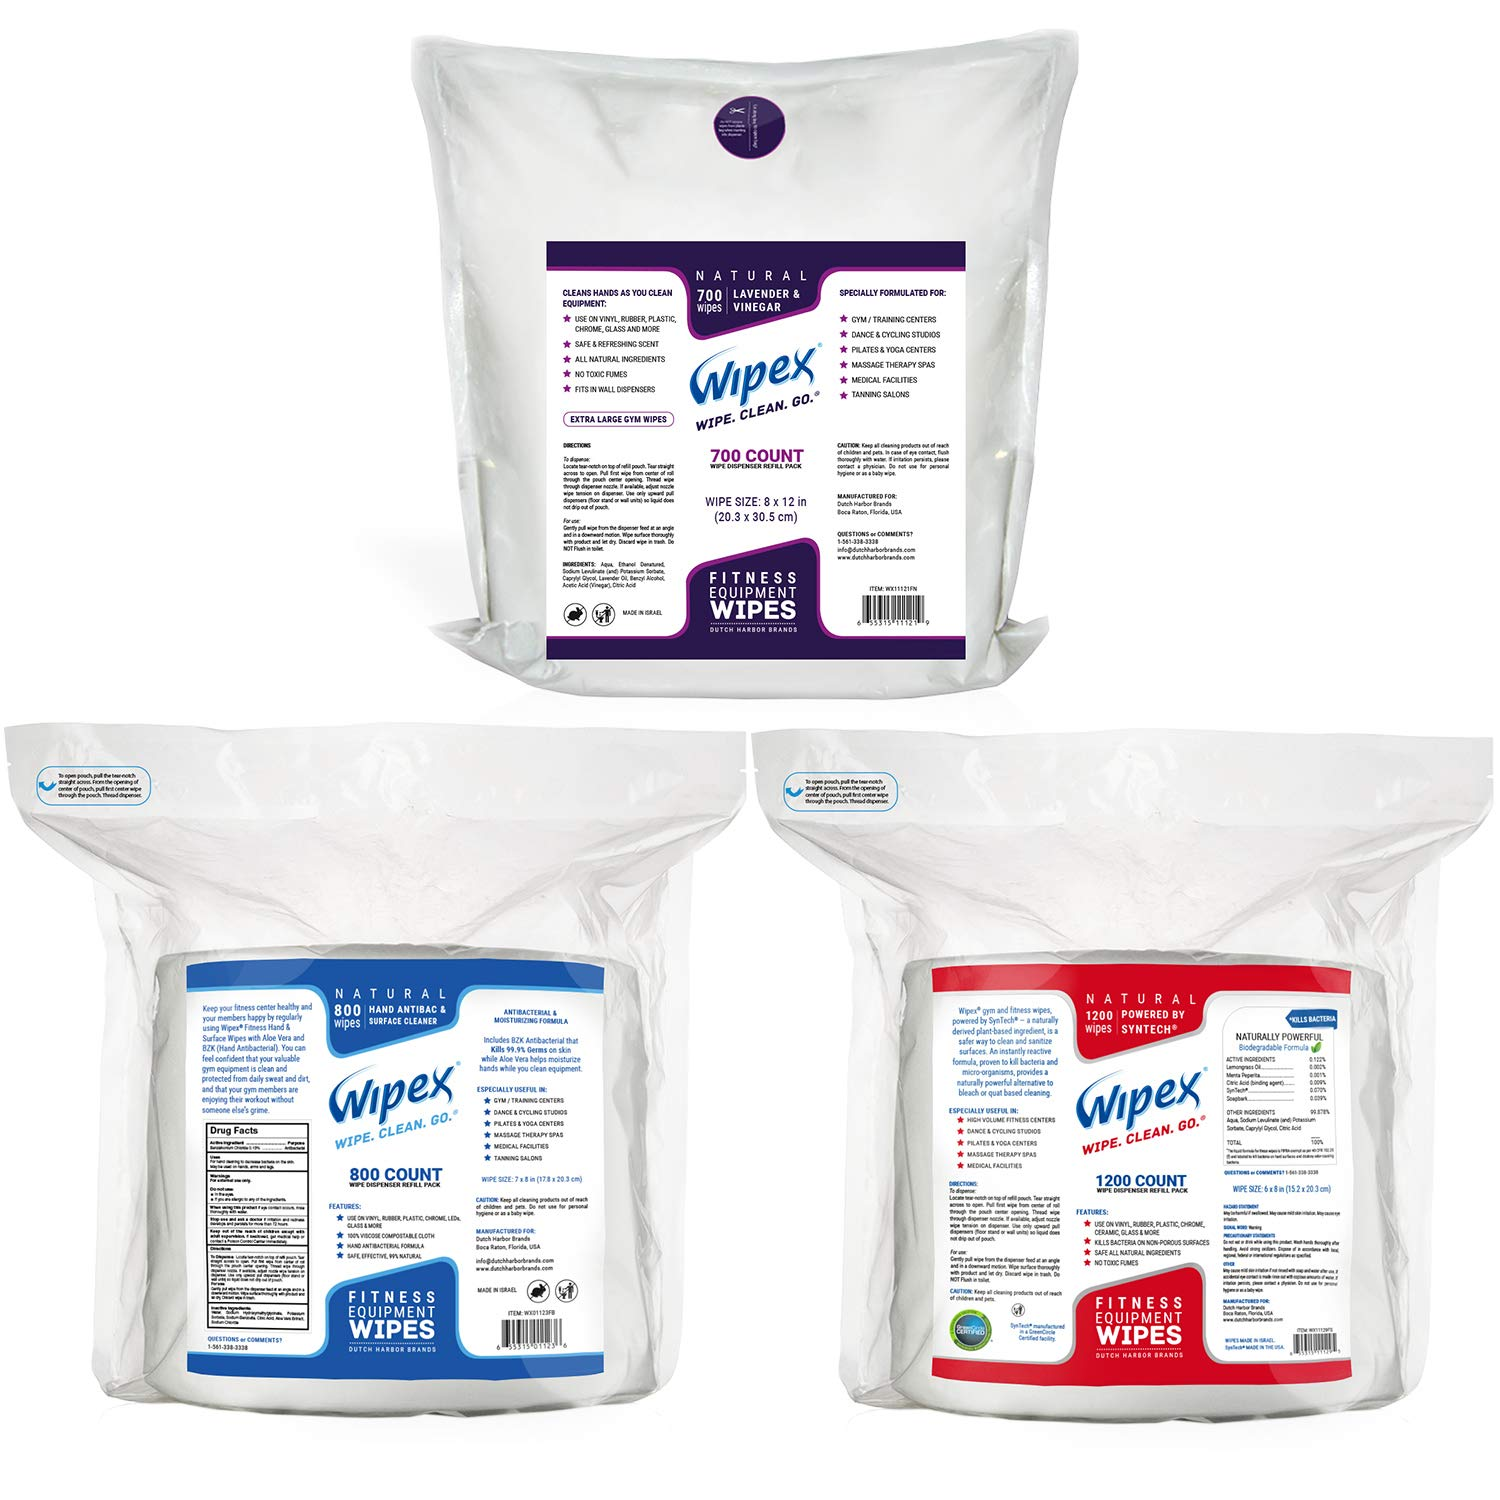 Wipex Gym & Fitness Wipes Refill Pack 700 Large Natural Wipes With Vinegar & Lavender Oil (1 Refill) by Wipex (Image #5)